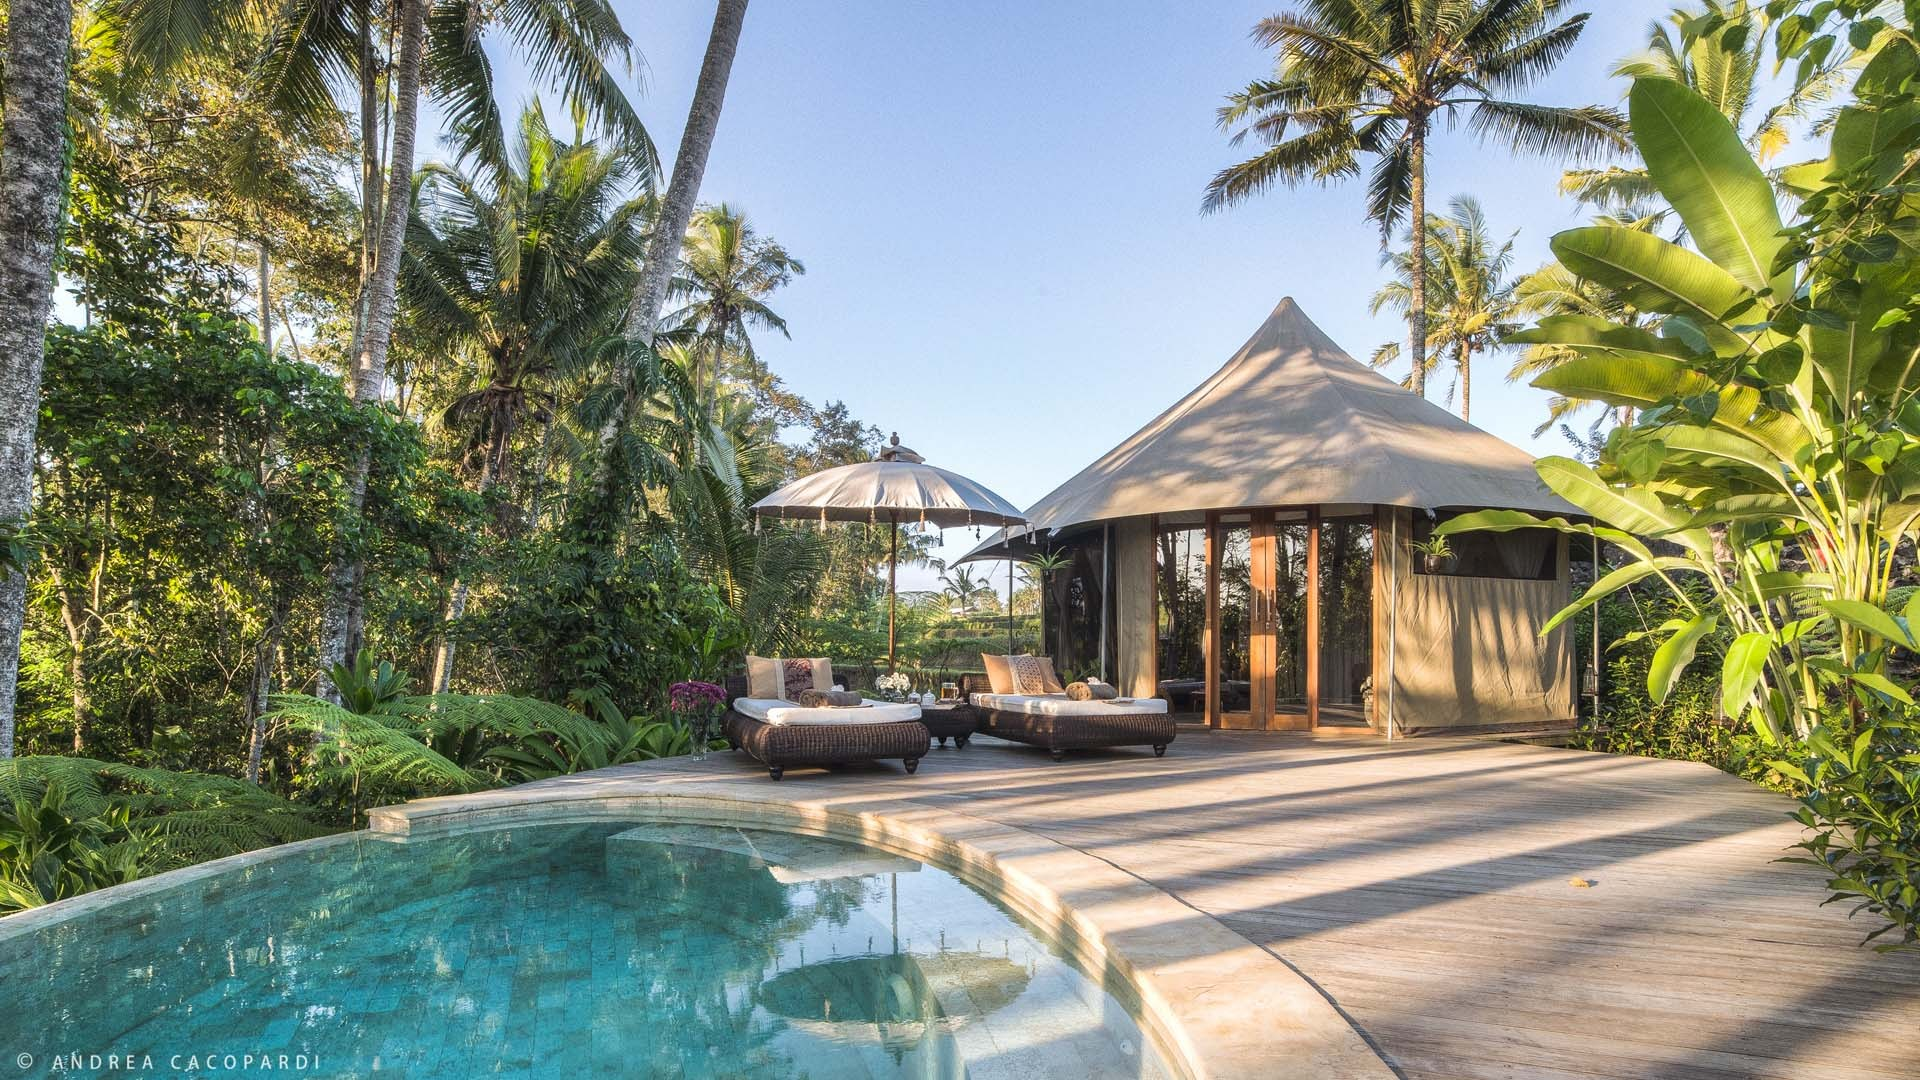 Tropical Glamping Tents